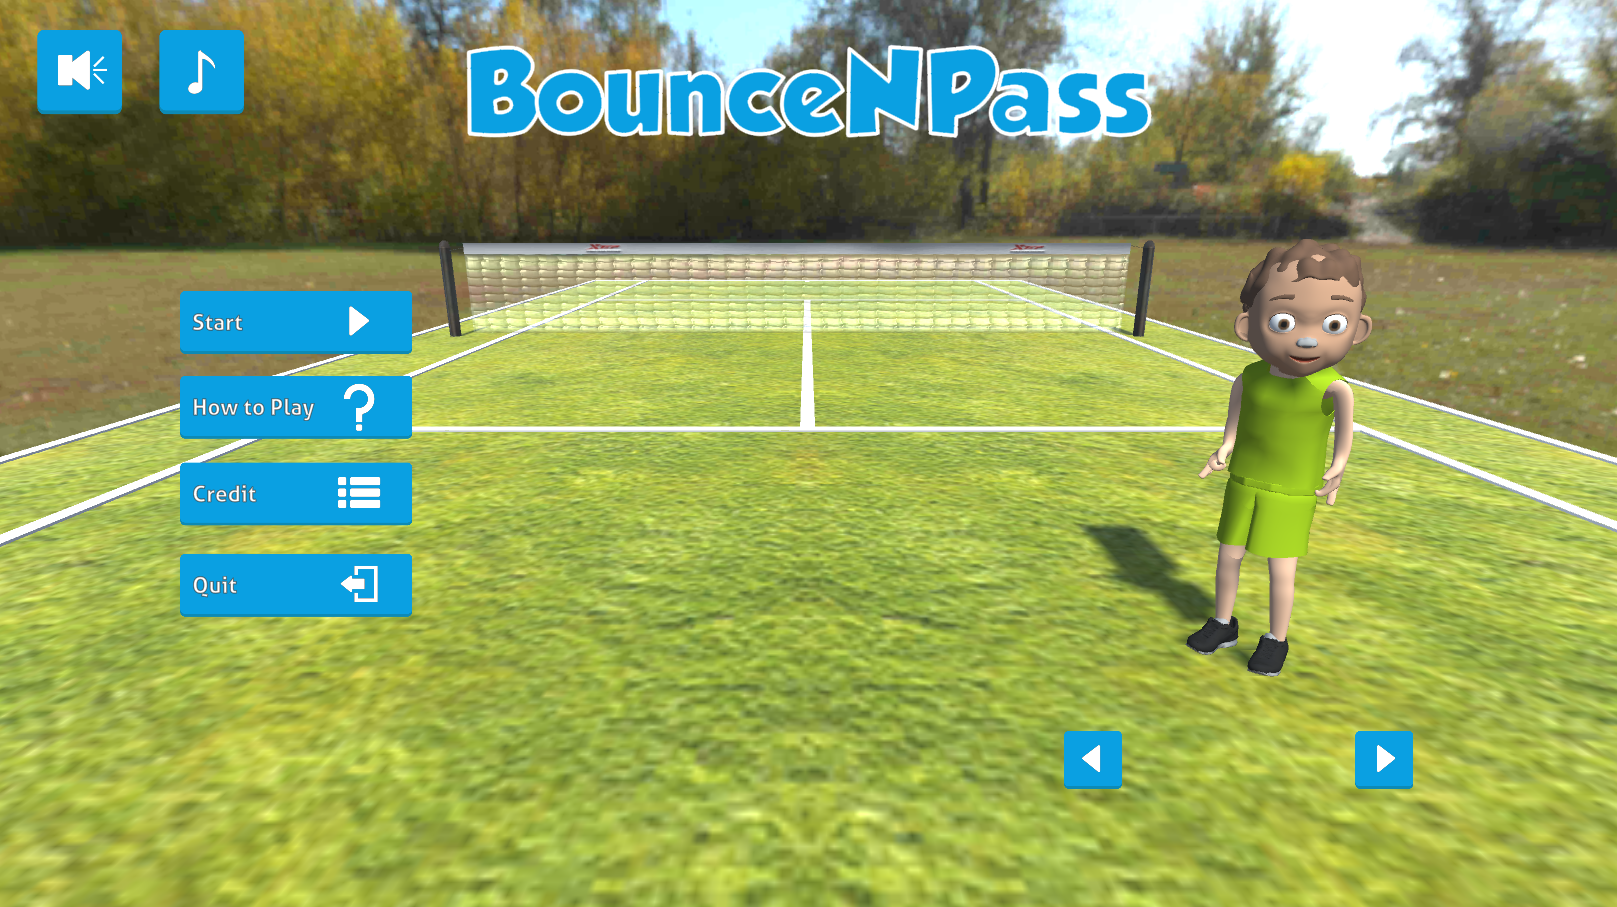 BounceNpass